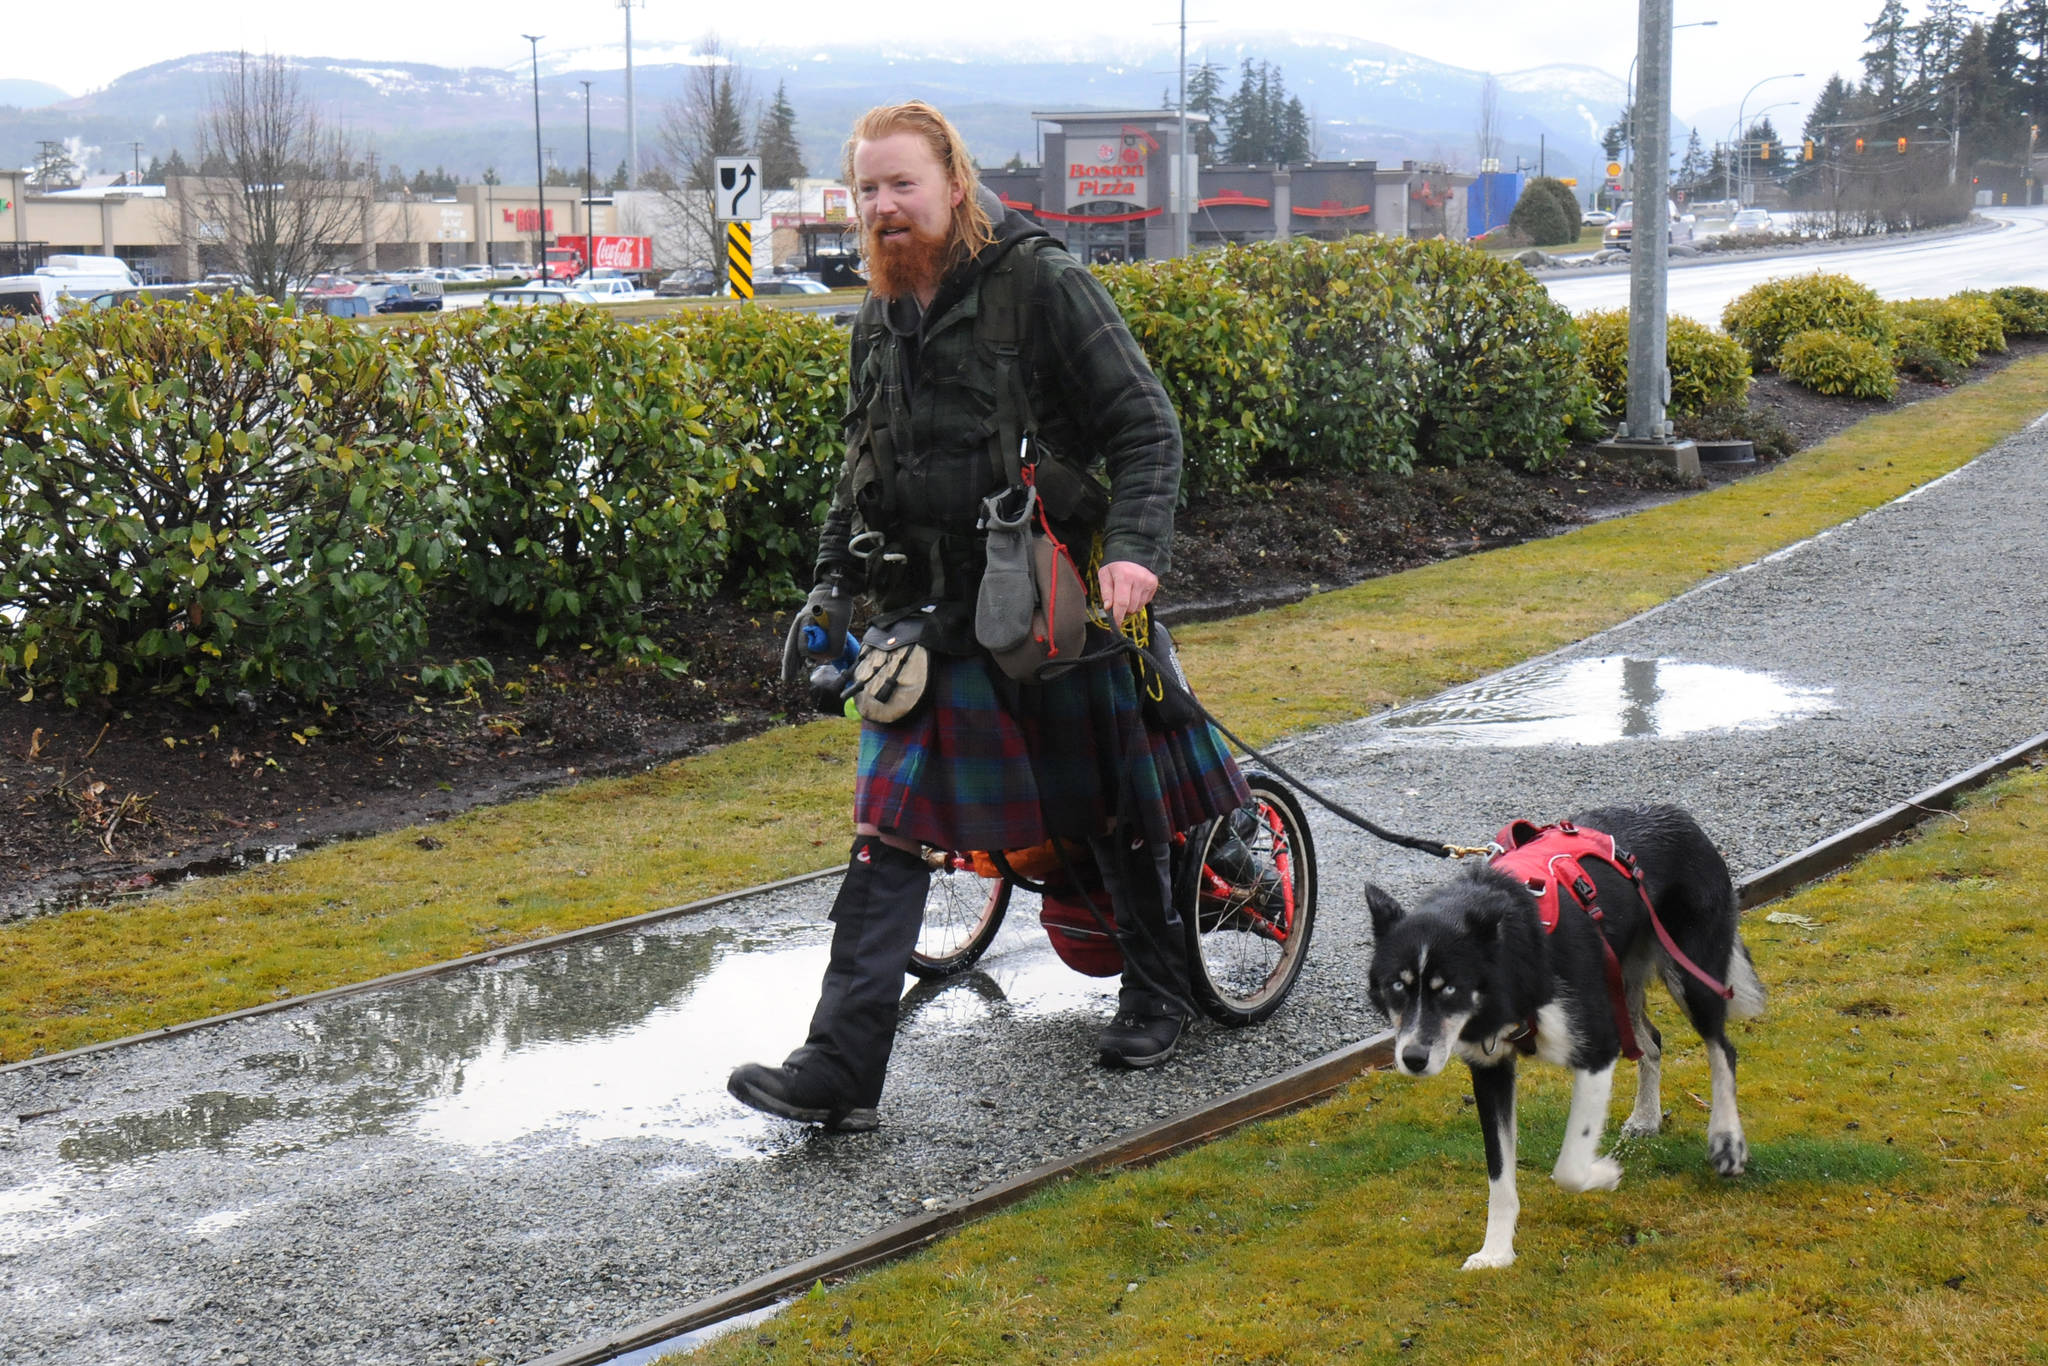 Michael Yellowlees and his dog Luna continue on their journey through Port Alberni after a couple of interviews on a soggy Friday, March 5, 2021. Yellowlees left Tofino four days previously and intends to walk to Newfoundland and Labrador to raise awareness for a Scottish environmental charity. (SUSAN QUINN/ Alberni Valley News)